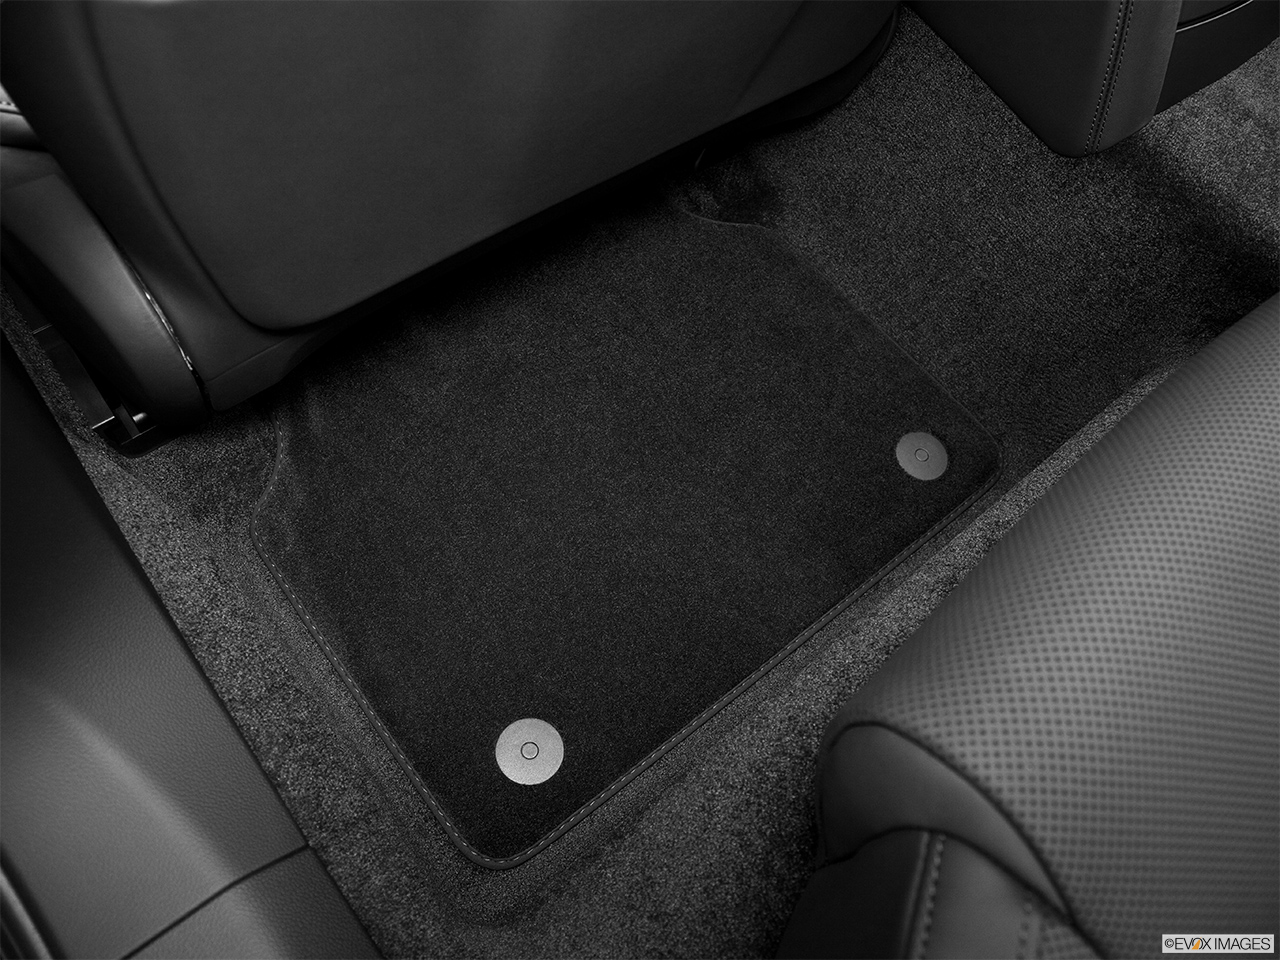 2014 Audi S8 4.0 TFSI Rear driver's side floor mat. Mid-seat level from outside looking in.